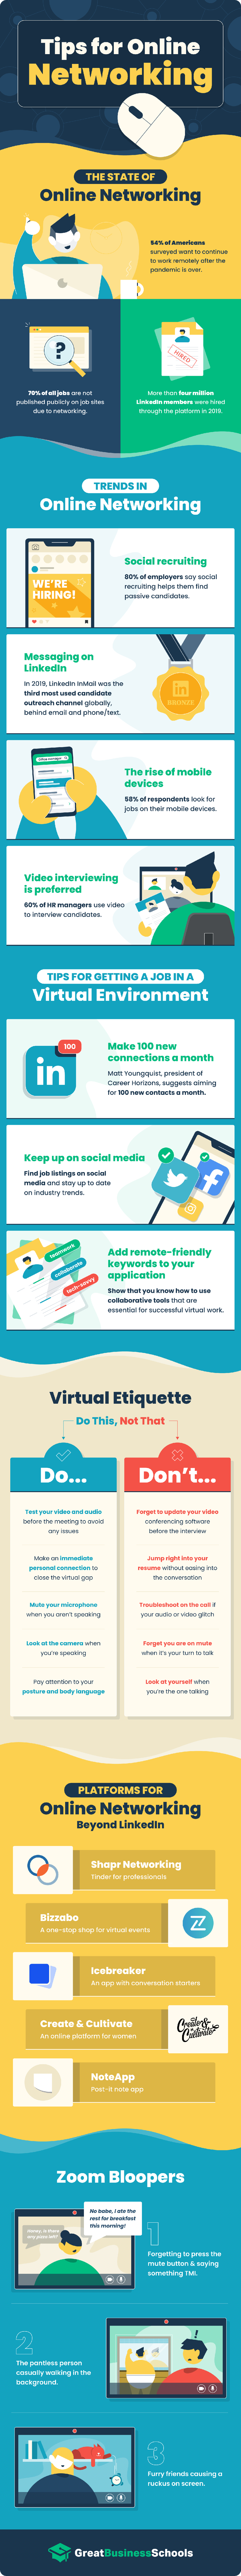 Creative Virtual Networking Tips